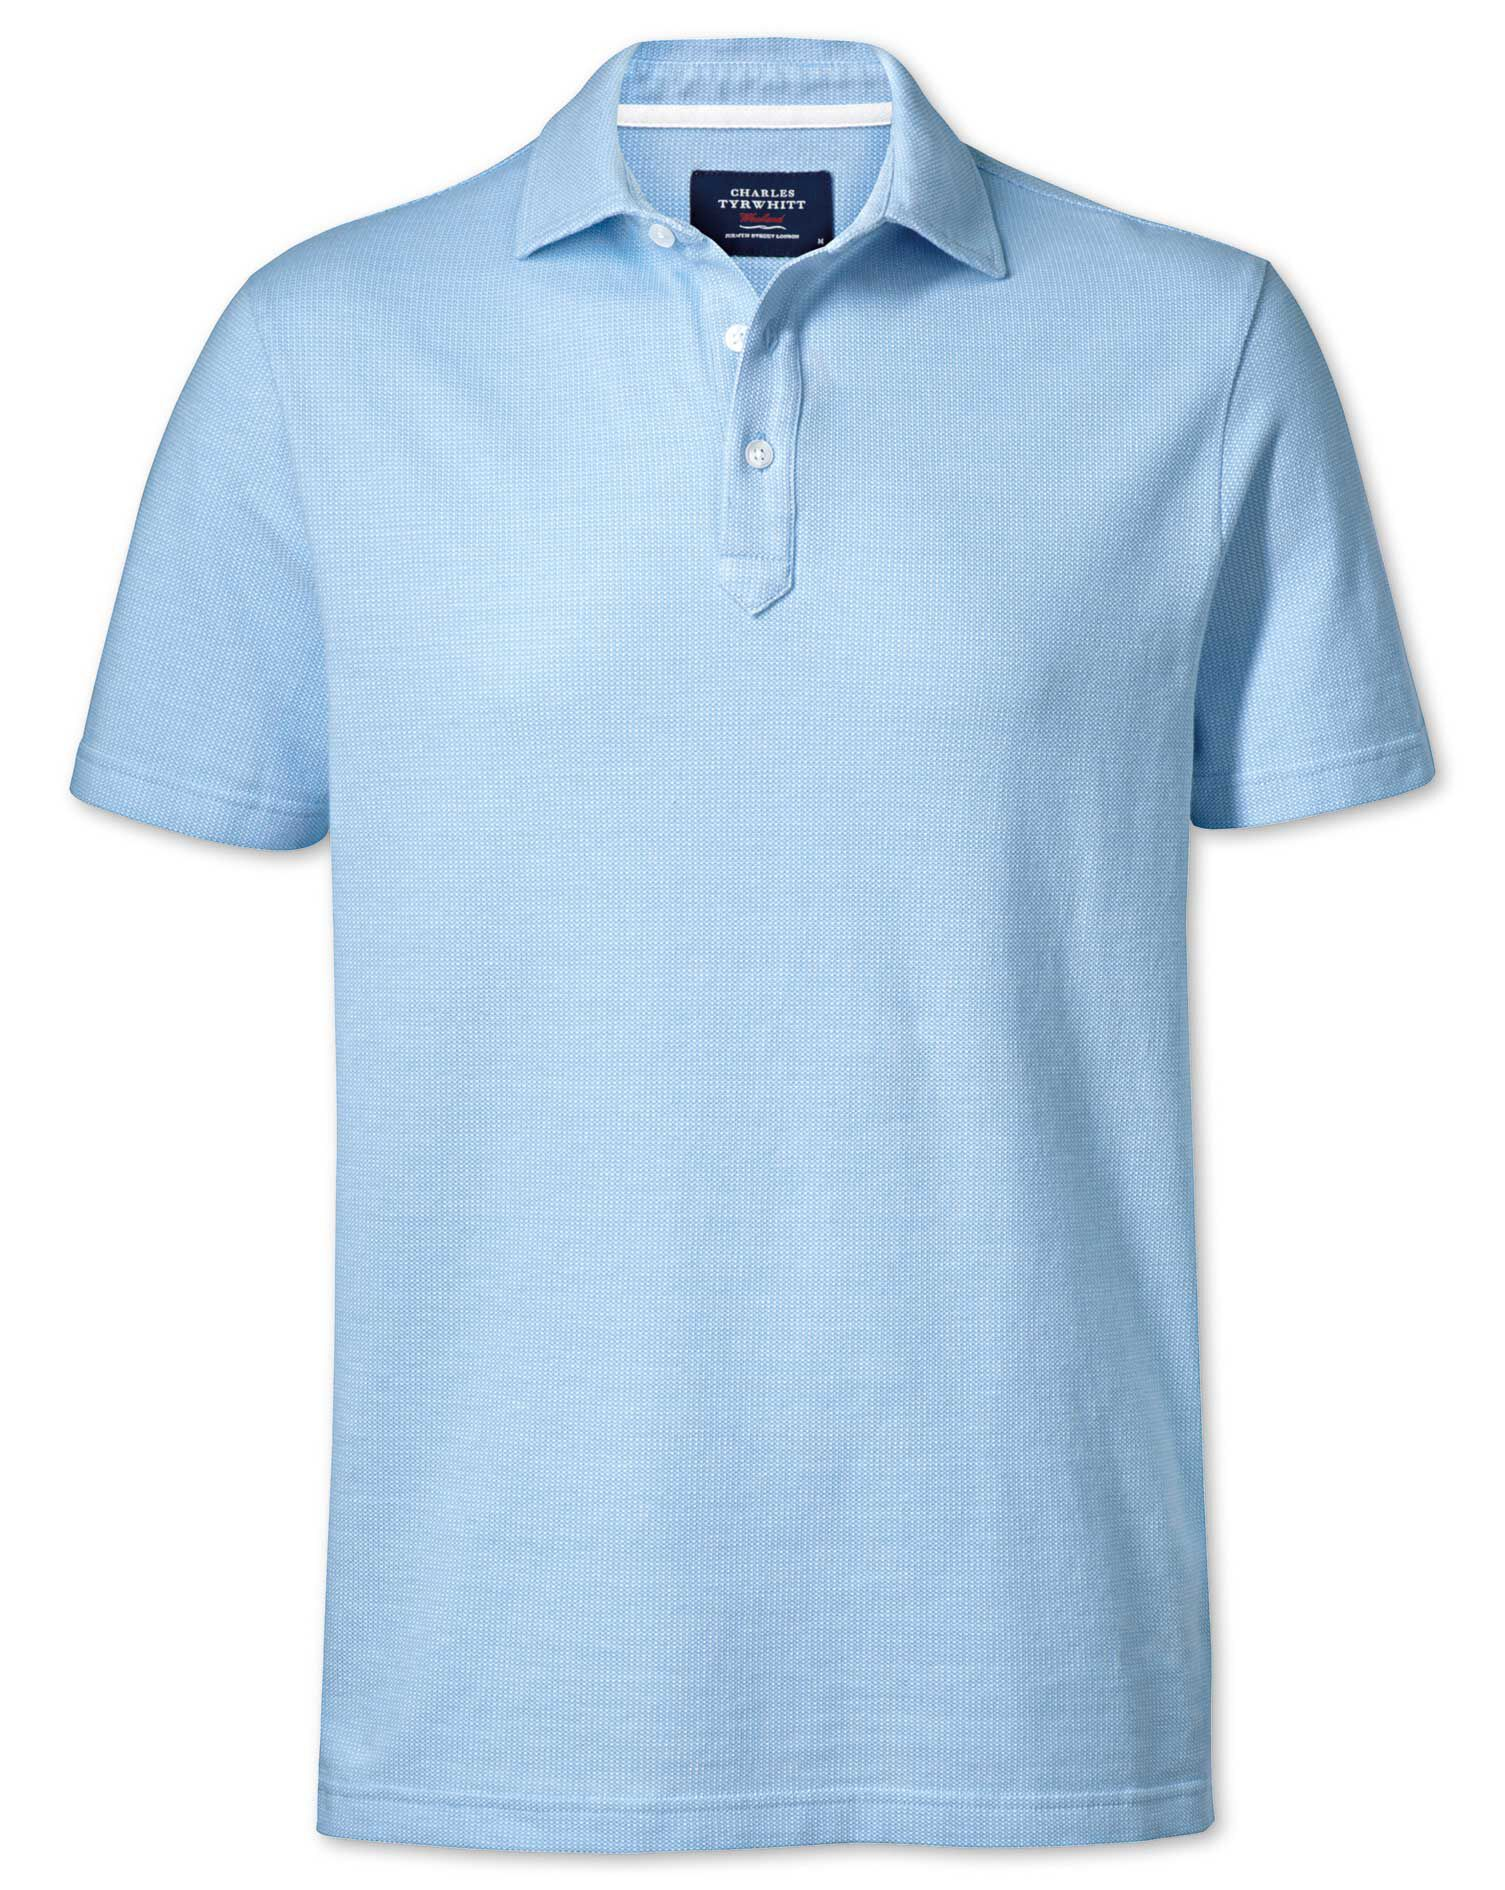 Sky Blue and White Birds Eye Cotton Polo Size XS by Charles Tyrwhitt